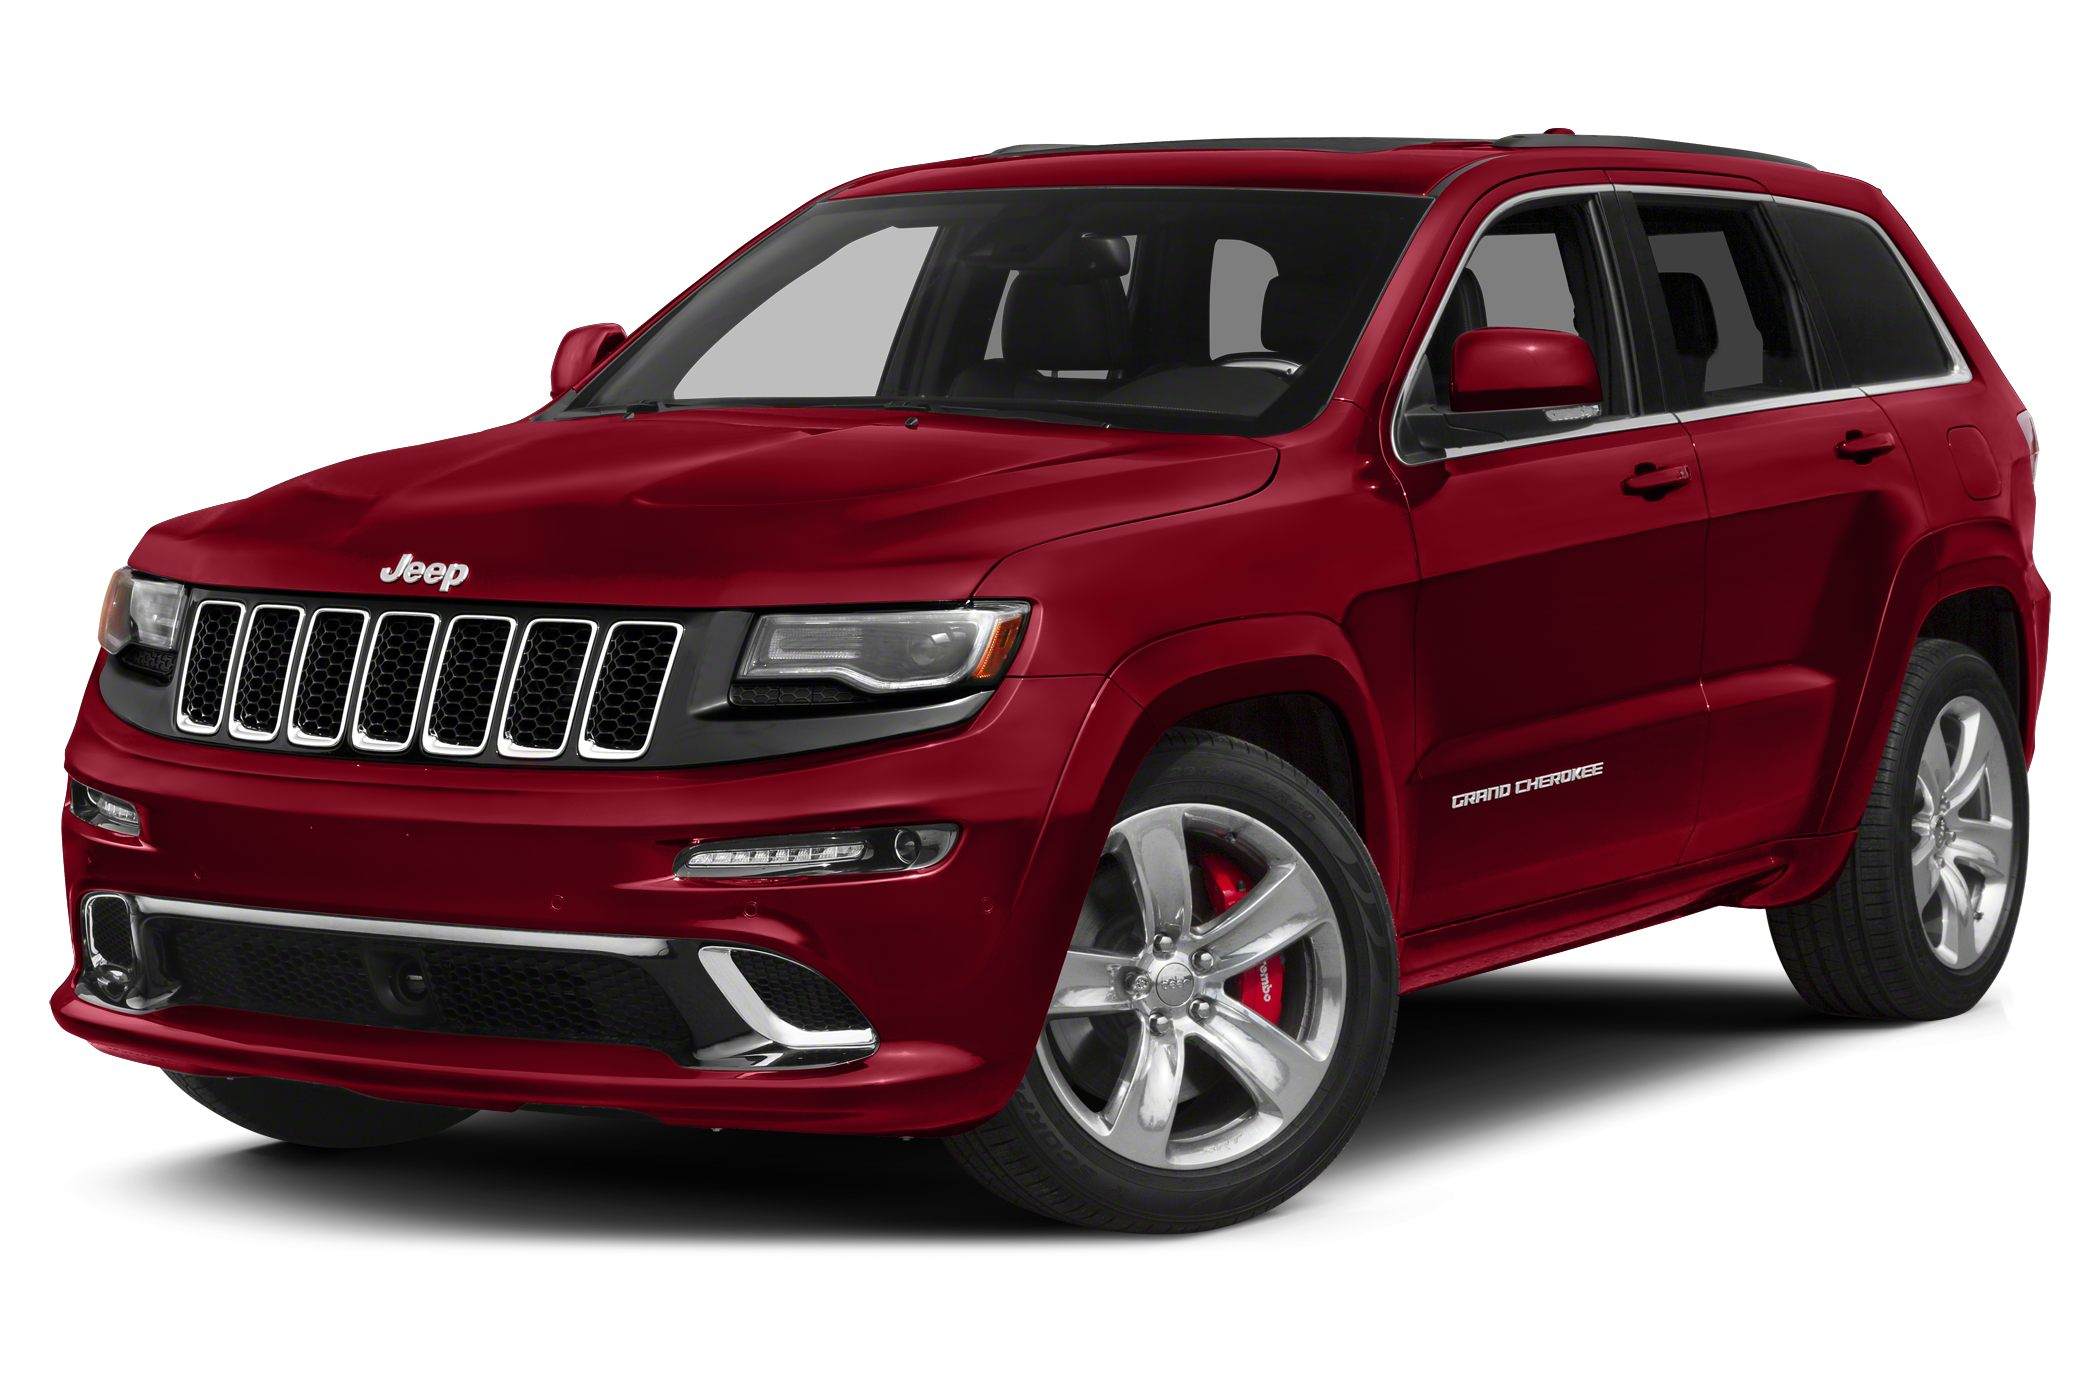 2015 Jeep Grand Cherokee SRT SUV for sale in O Fallon for $70,163 with 0 miles.